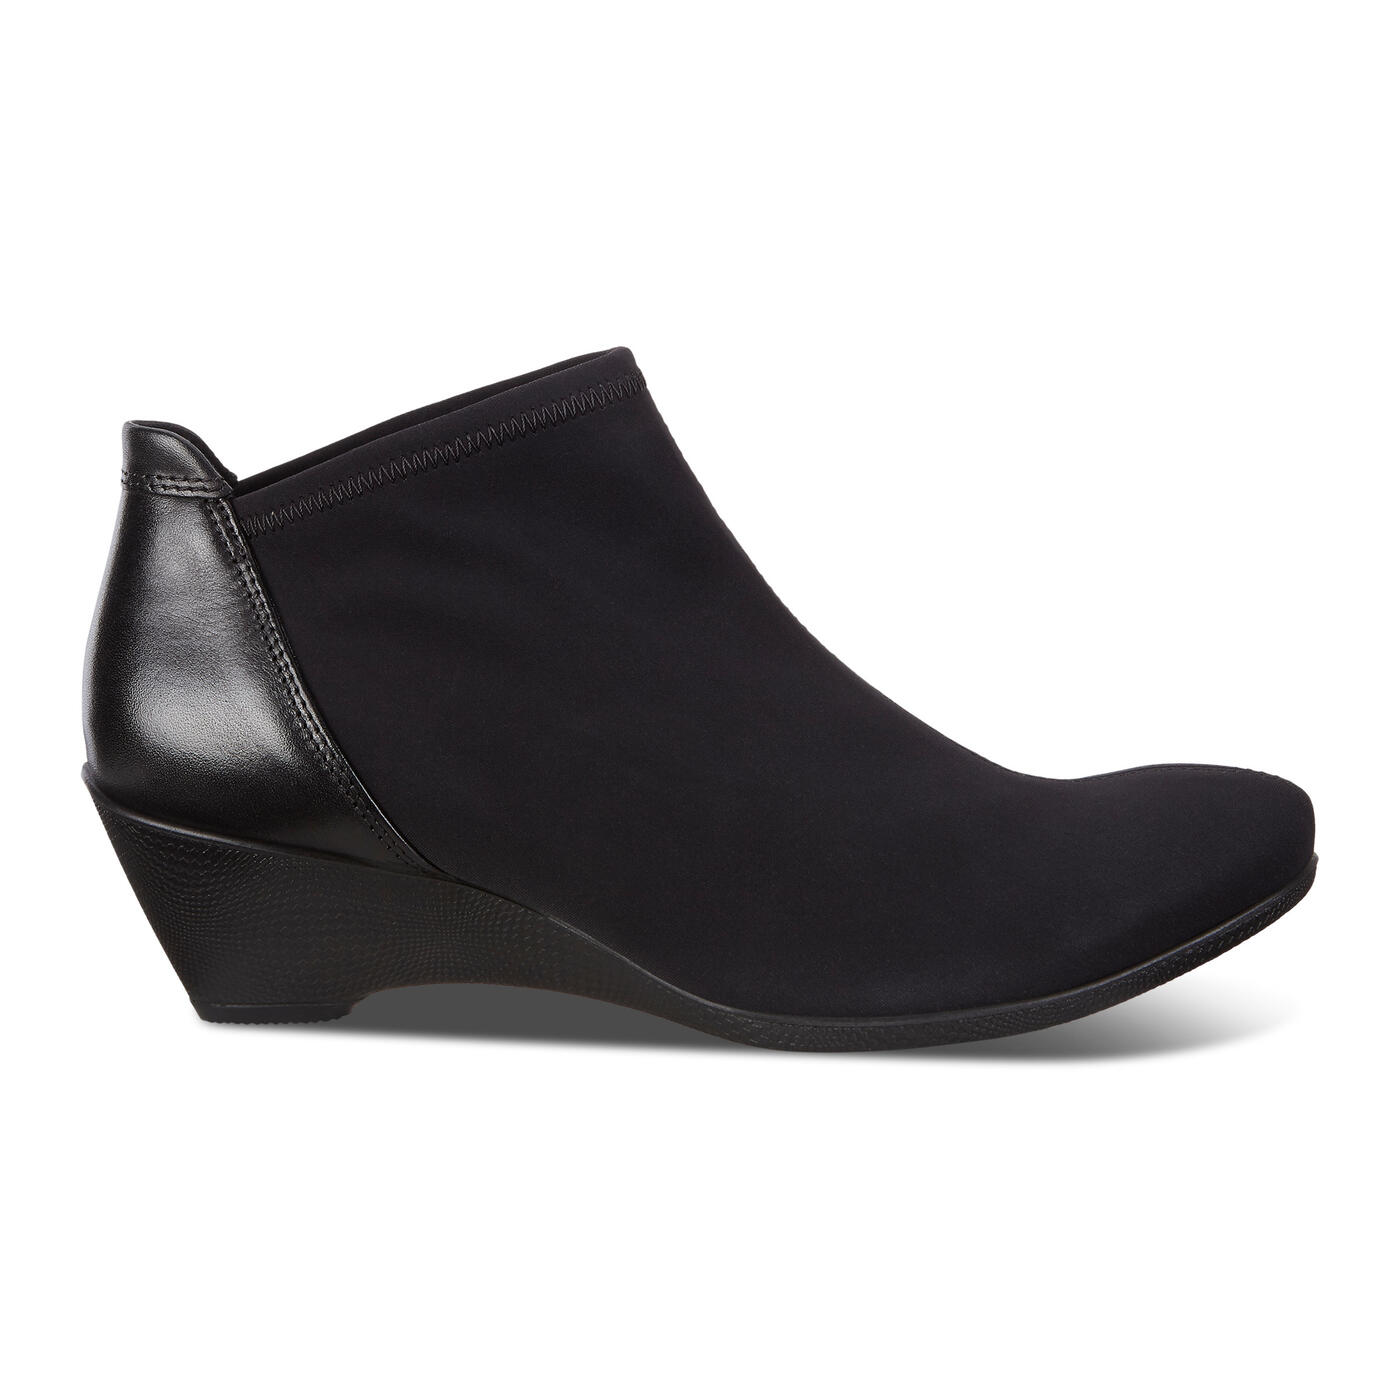 ECCO SCULPTURED 45 Womens Ankle Boot